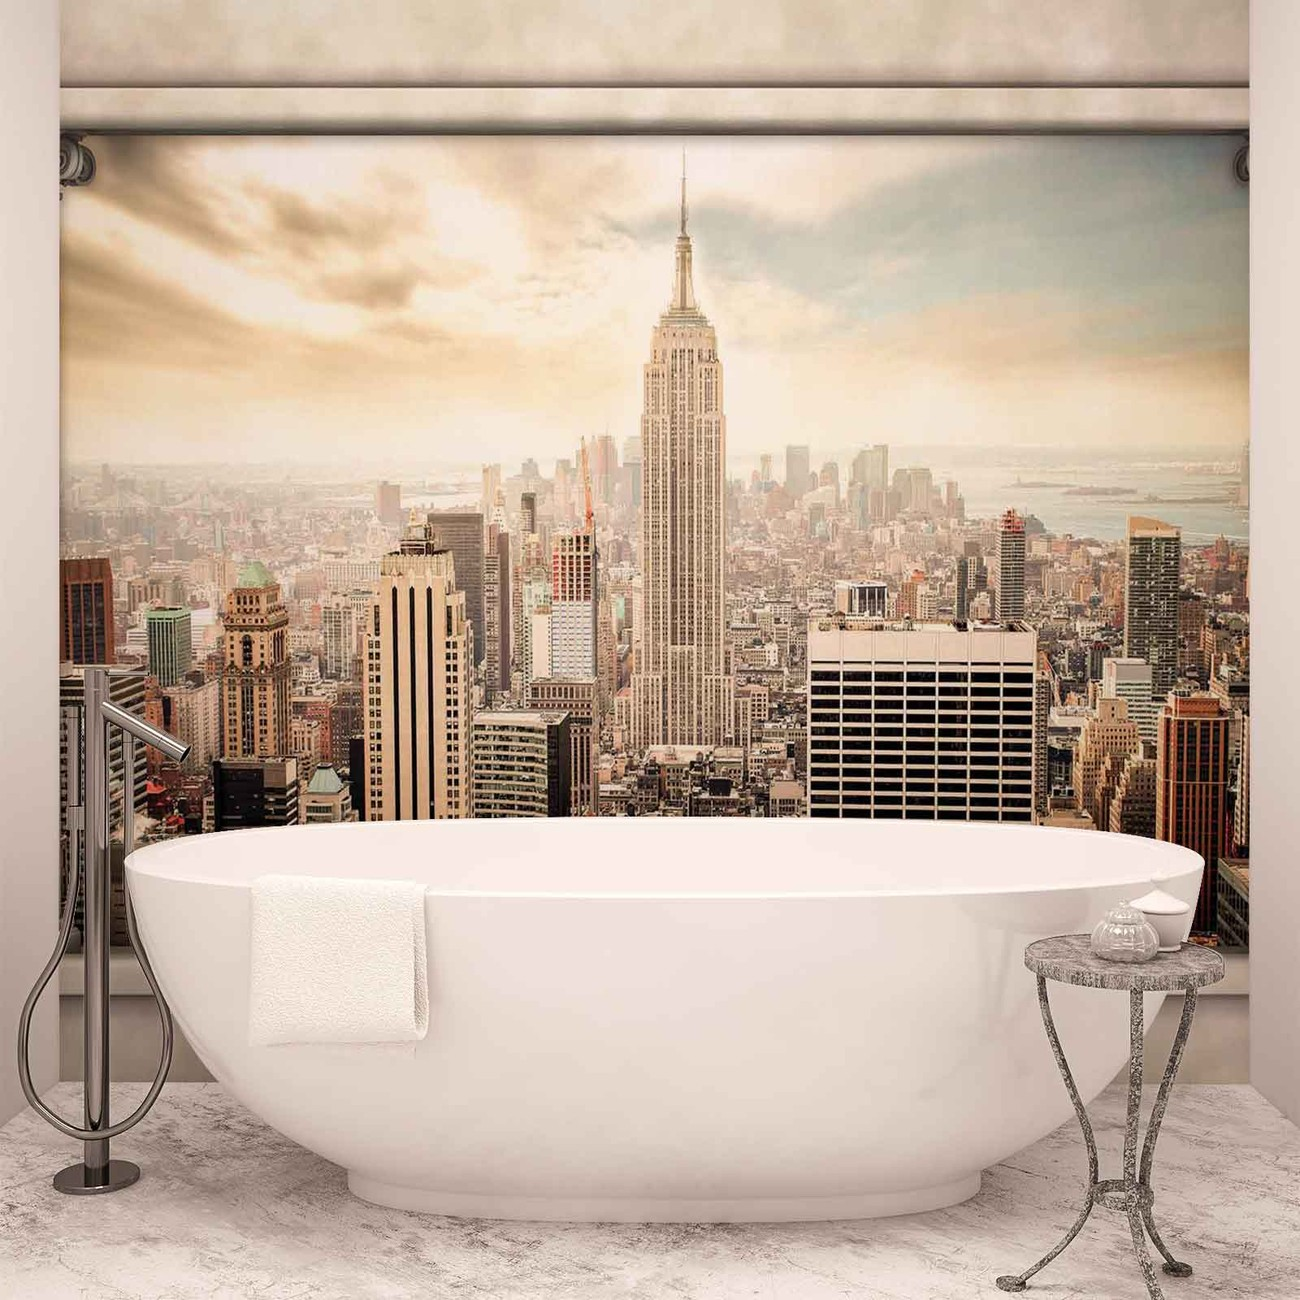 New york city view pillars wall paper mural buy at for Acheter poster mural new york